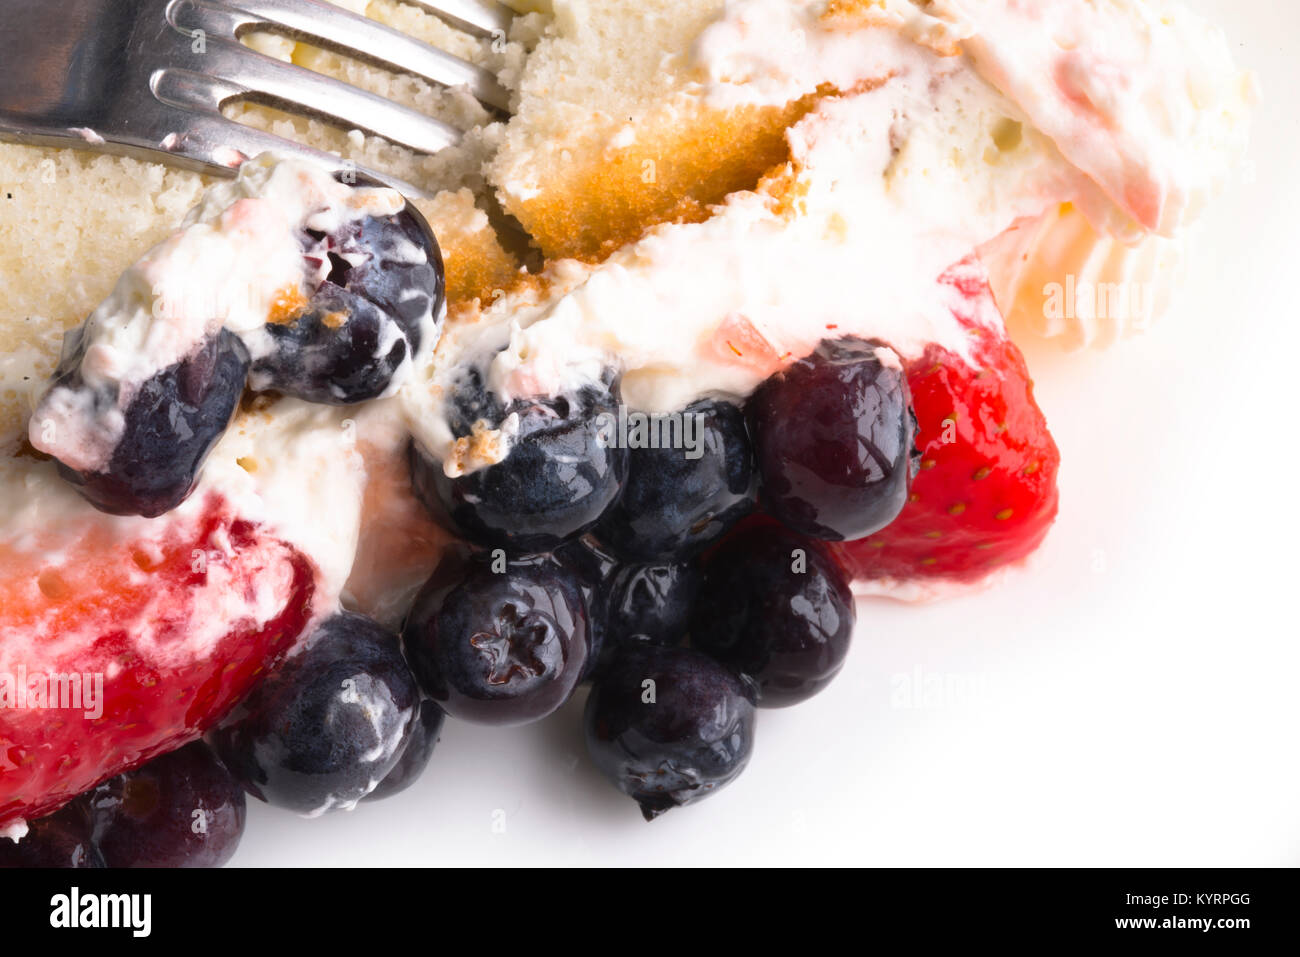 Appetizing fruit cake made of biscuit dough with a delicious sweet cream on which fresh strawberries and blueberries - Stock Image